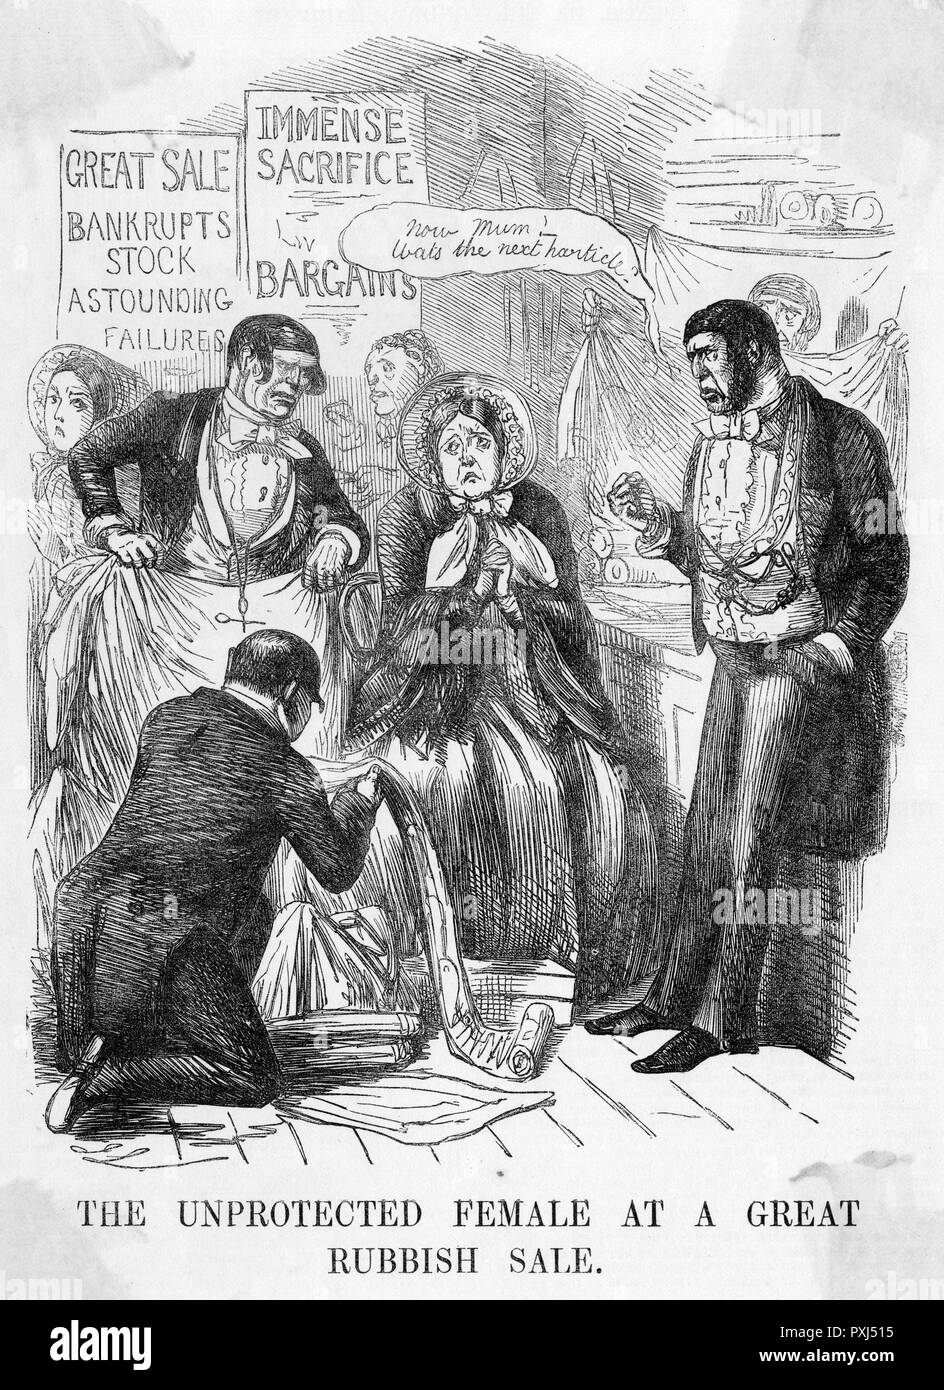 'THE UNPROTECTED FEMALE AT A GREAT RUBBISH SALE' The customer is depicted as the victim of unscrupulous shopkeepers      Date: 1853 - Stock Image